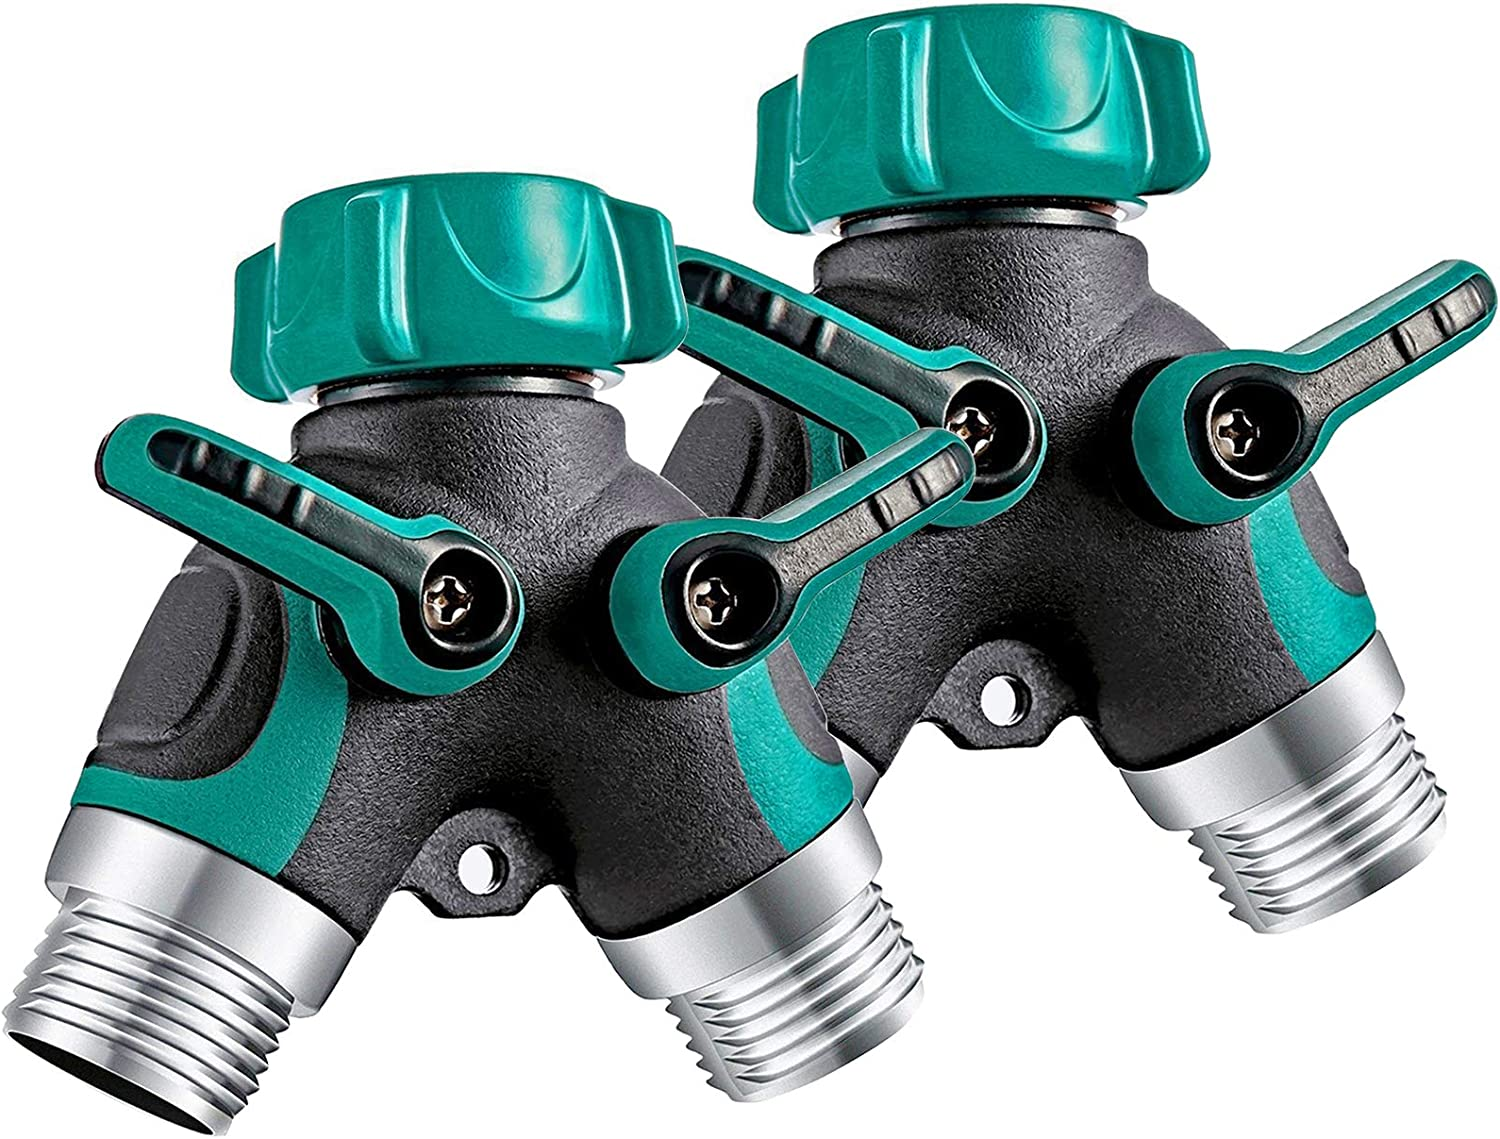 OKK Garden Hose Splitter 2 Way, Y Hose Connector Metal Body with Rubberized Grip, 3/4 inch Y Valve Water Faucet Splitter for Outdoor and Indoor,2 Pack